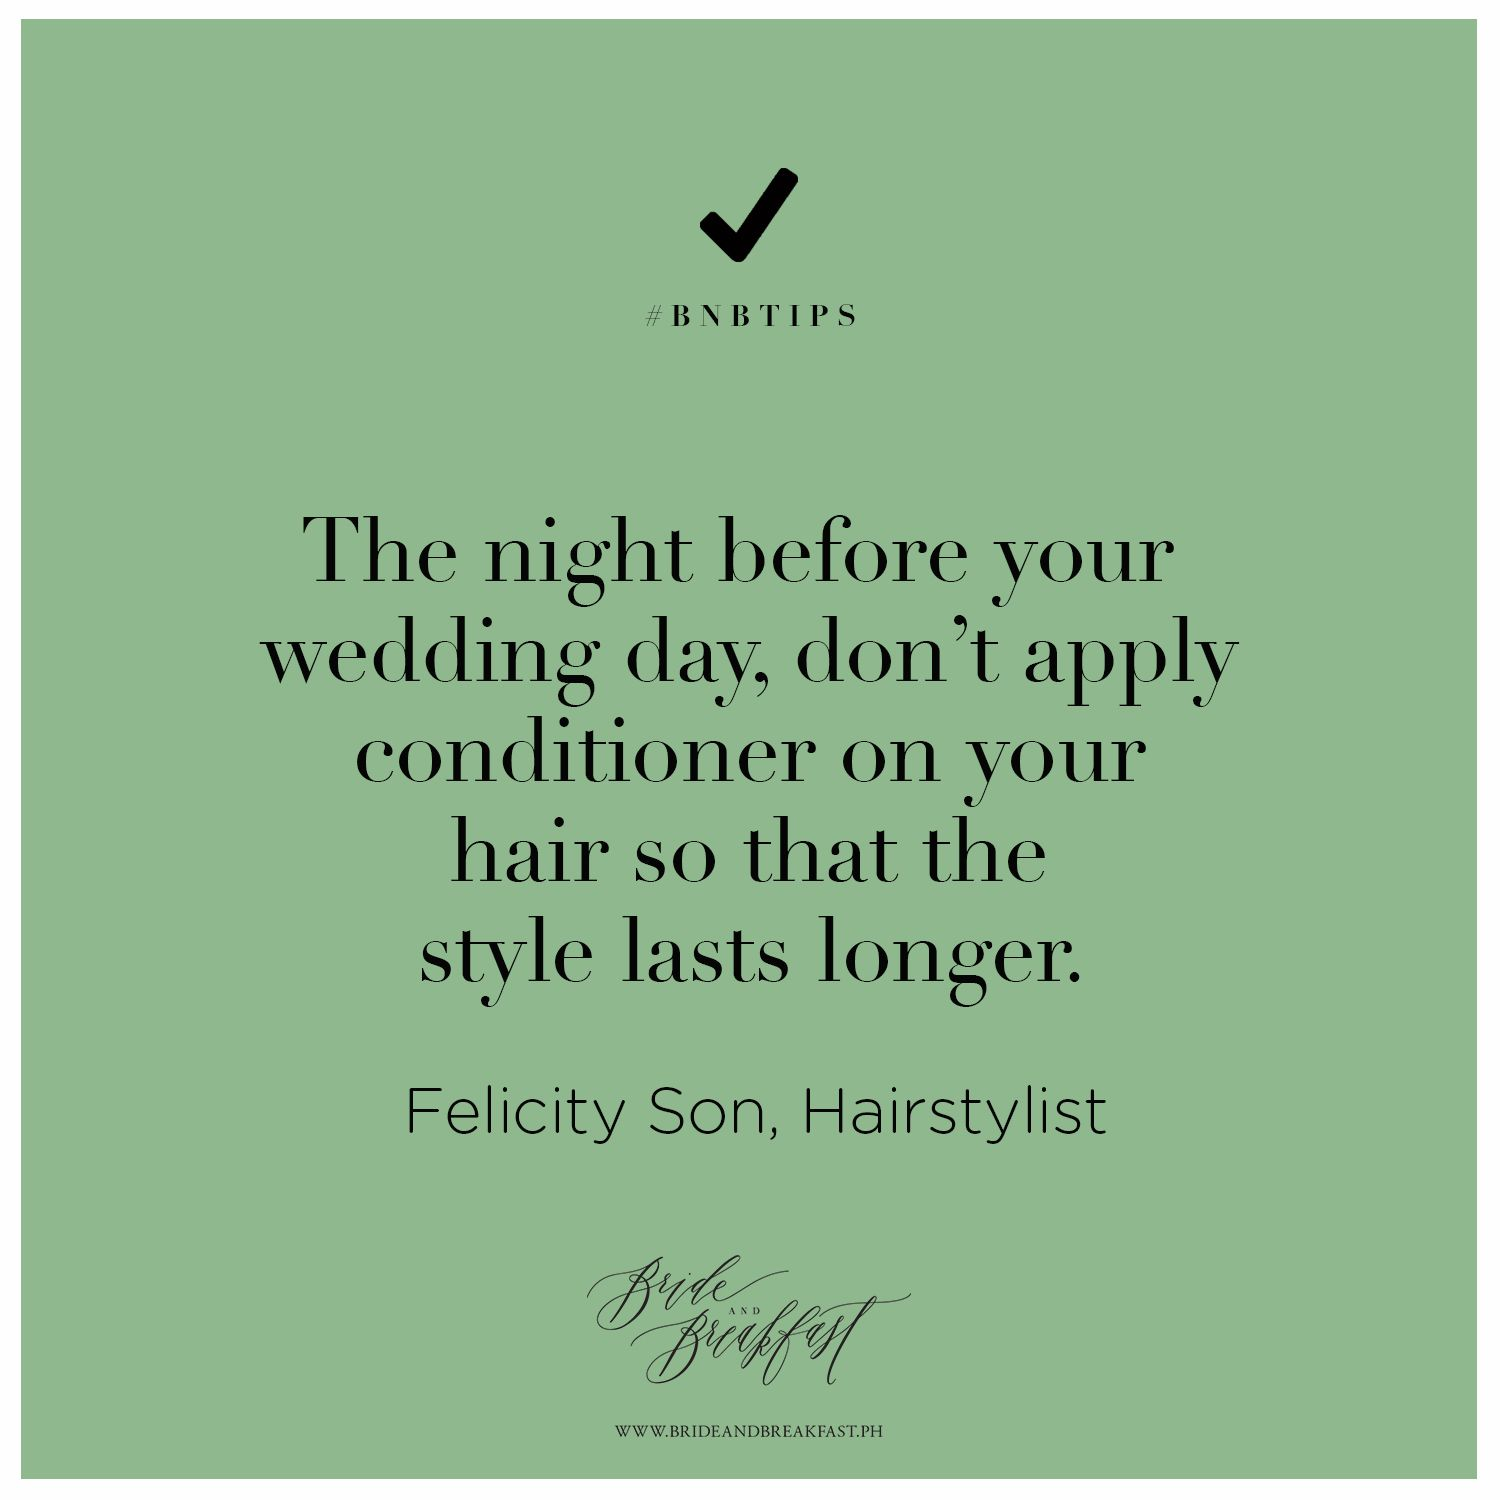 the night before your wedding day, don't apply conditioner